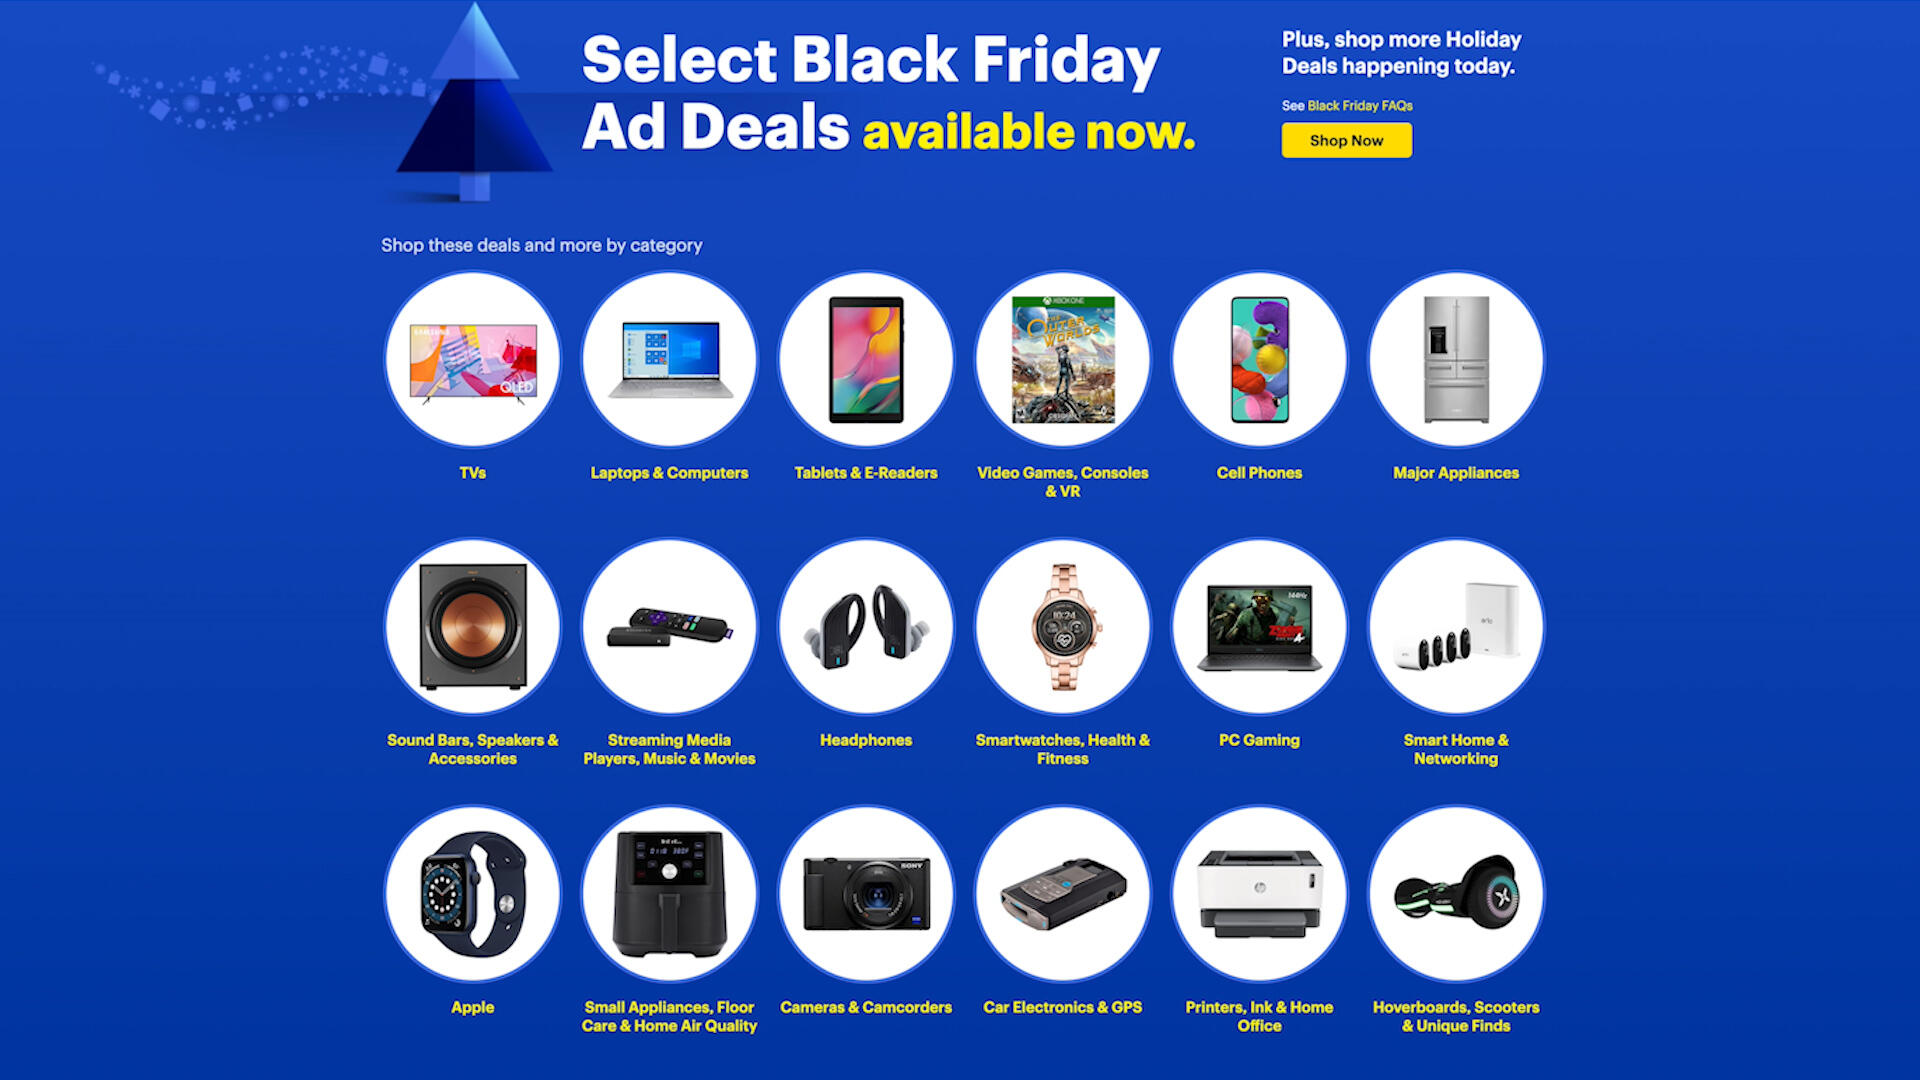 Video: Black Friday deals are happening all month: Here's where to shop